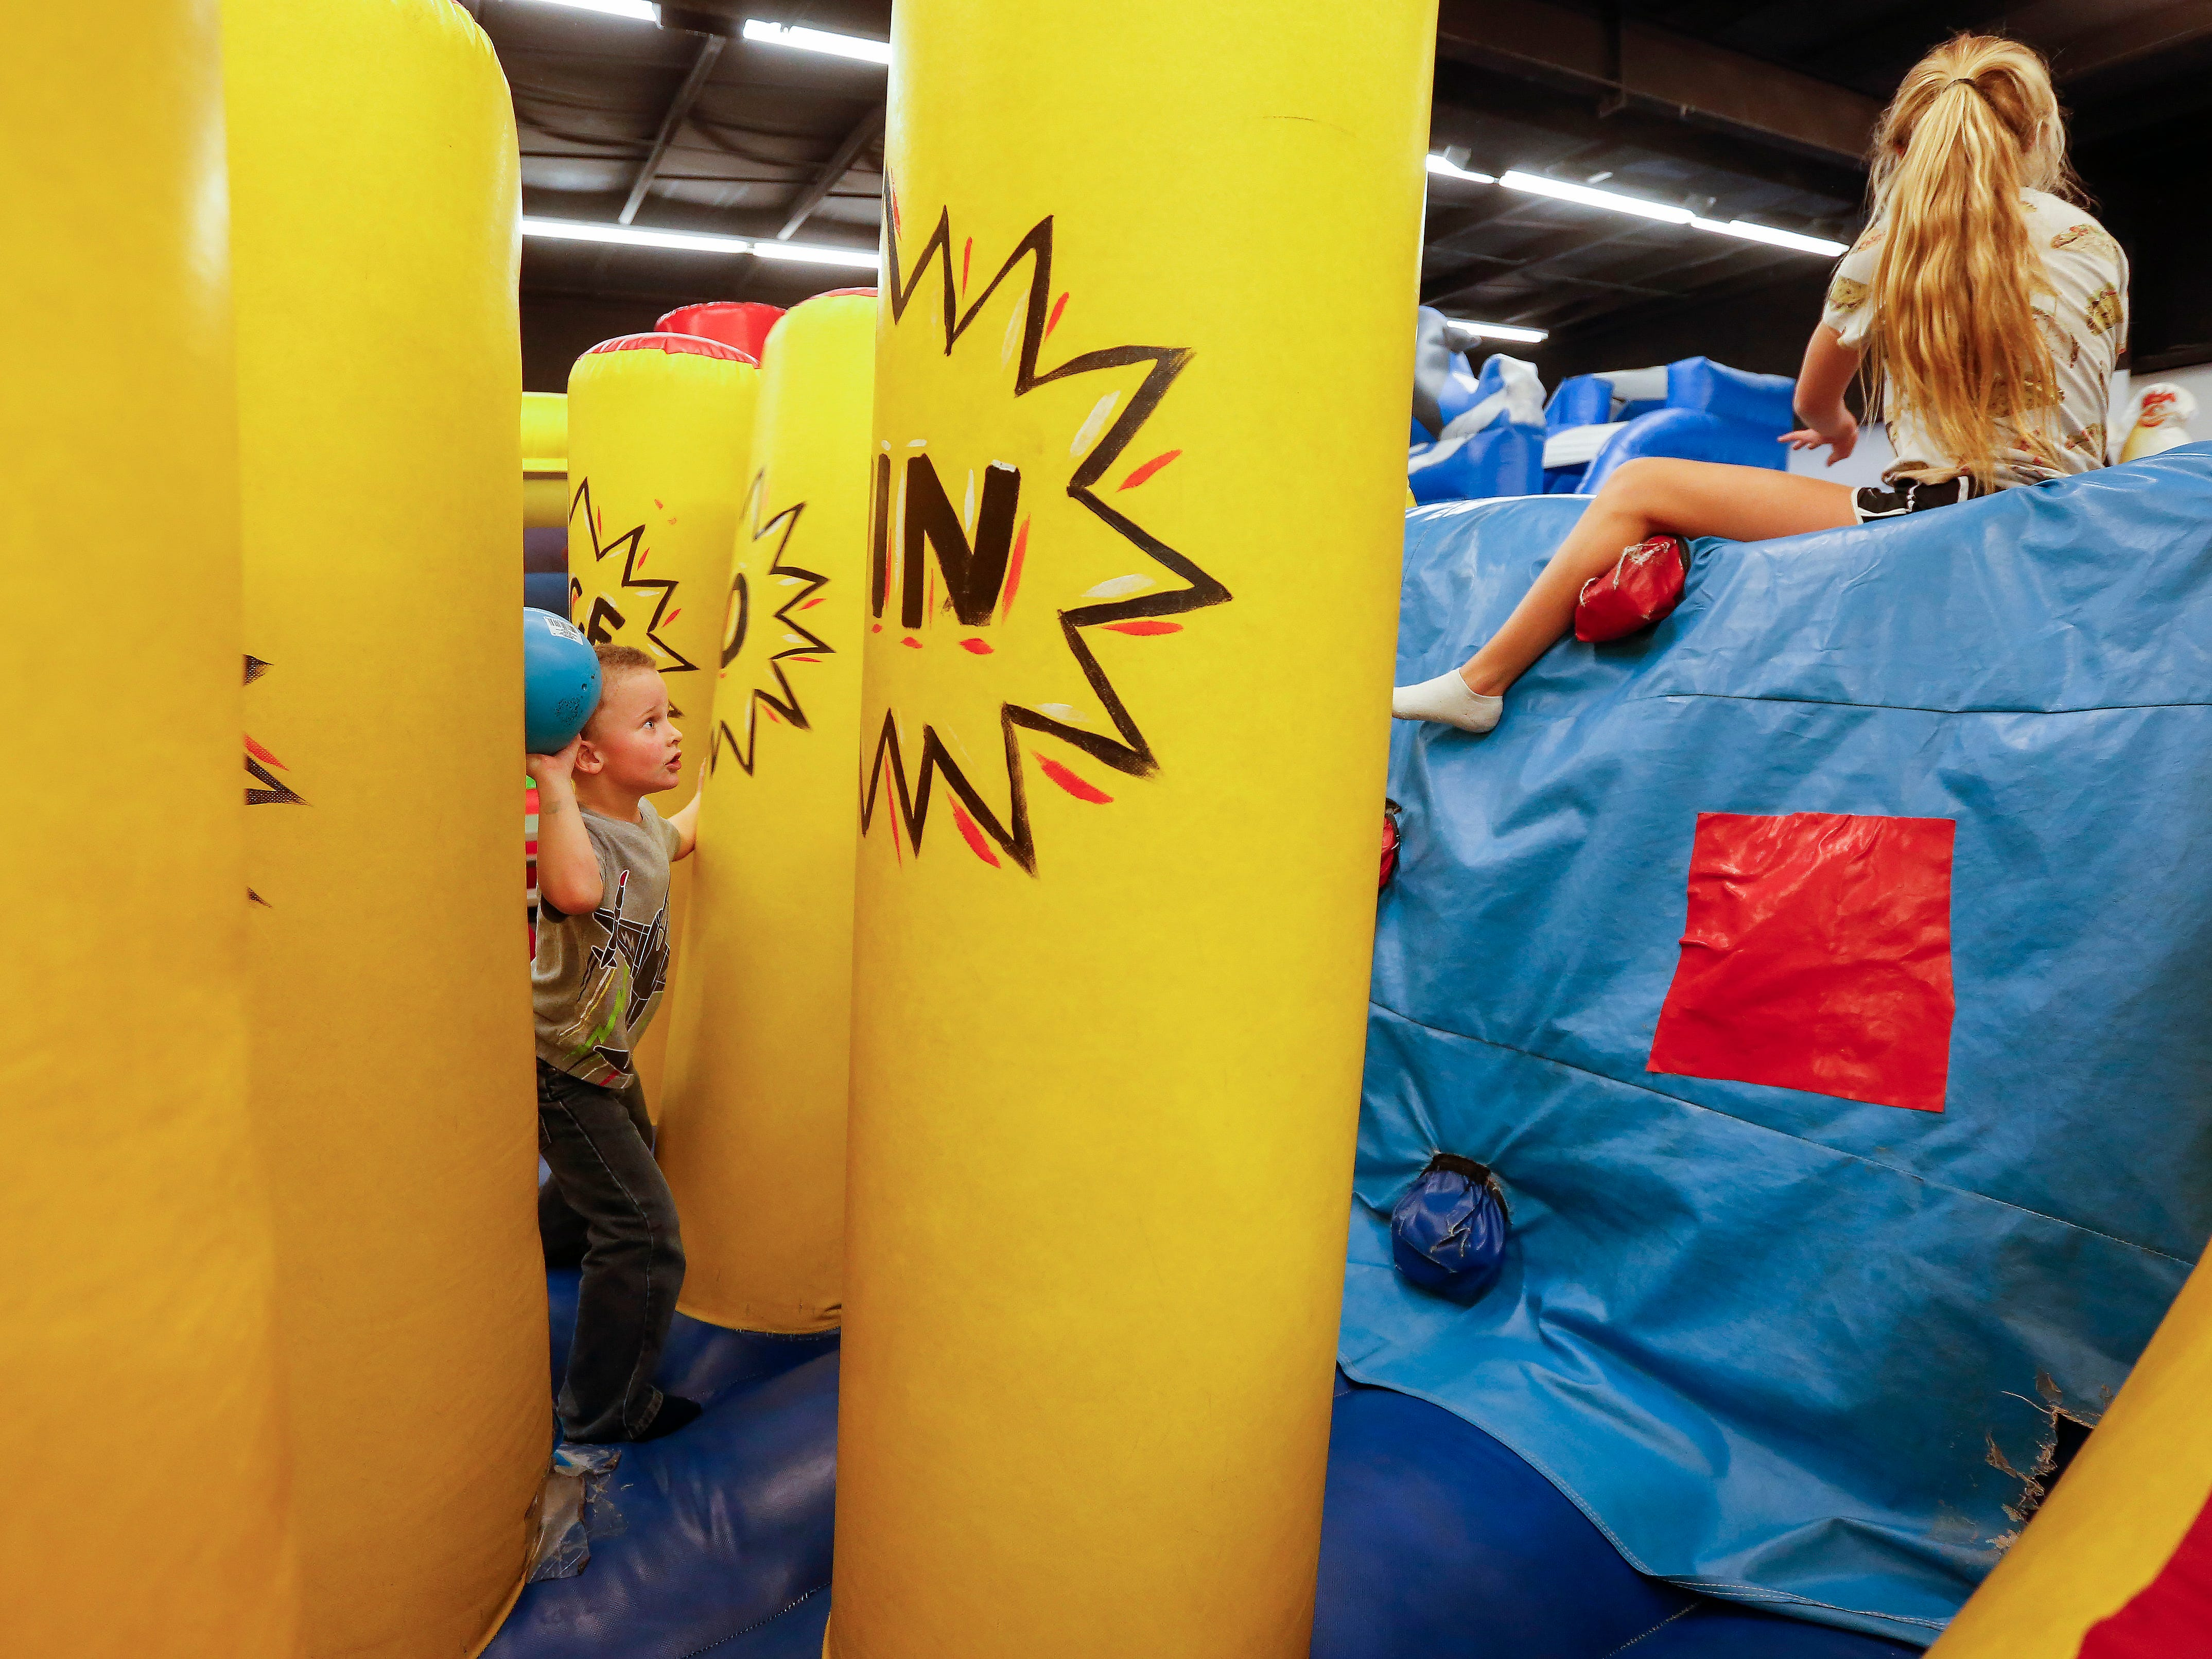 Take the kids to jump on something besides the couch. Jump Mania and Sky Zone are located right next to each other on the 2700 block of Kansas Expressway.